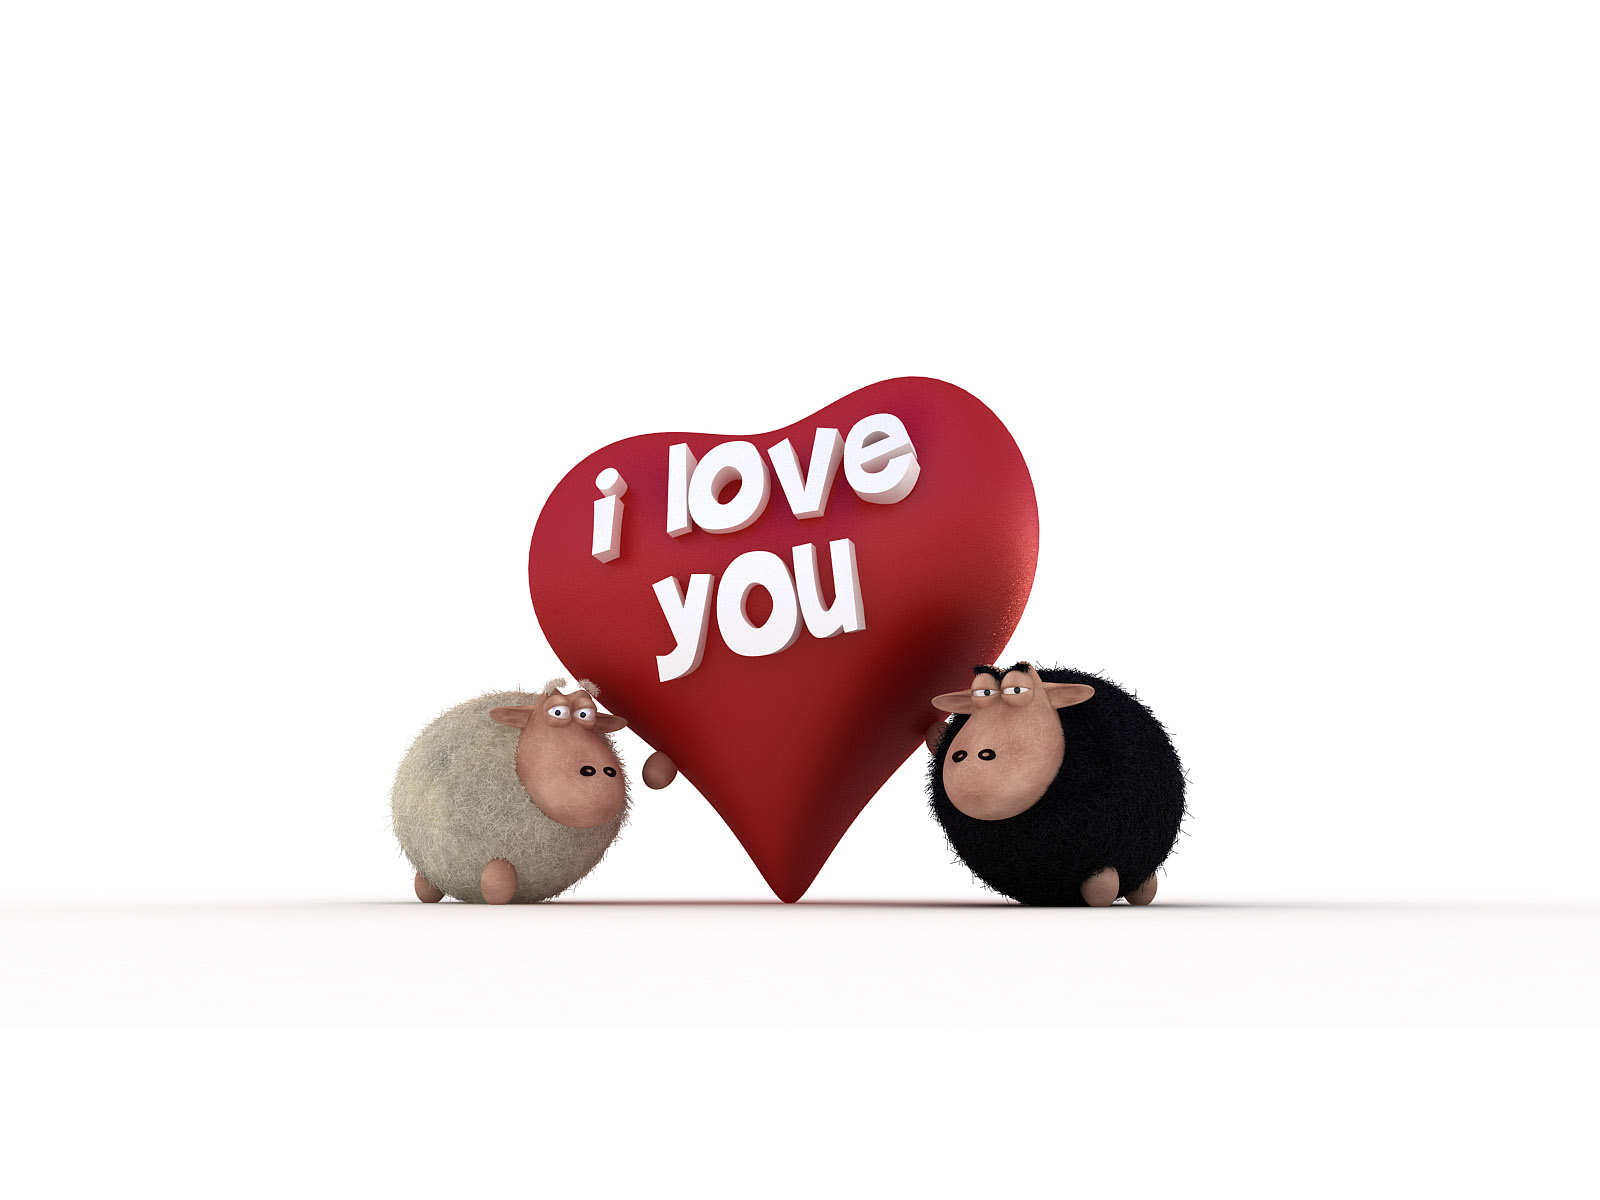 1600x1200 Sheeps - I Love You desktop wallpapers and stock photos